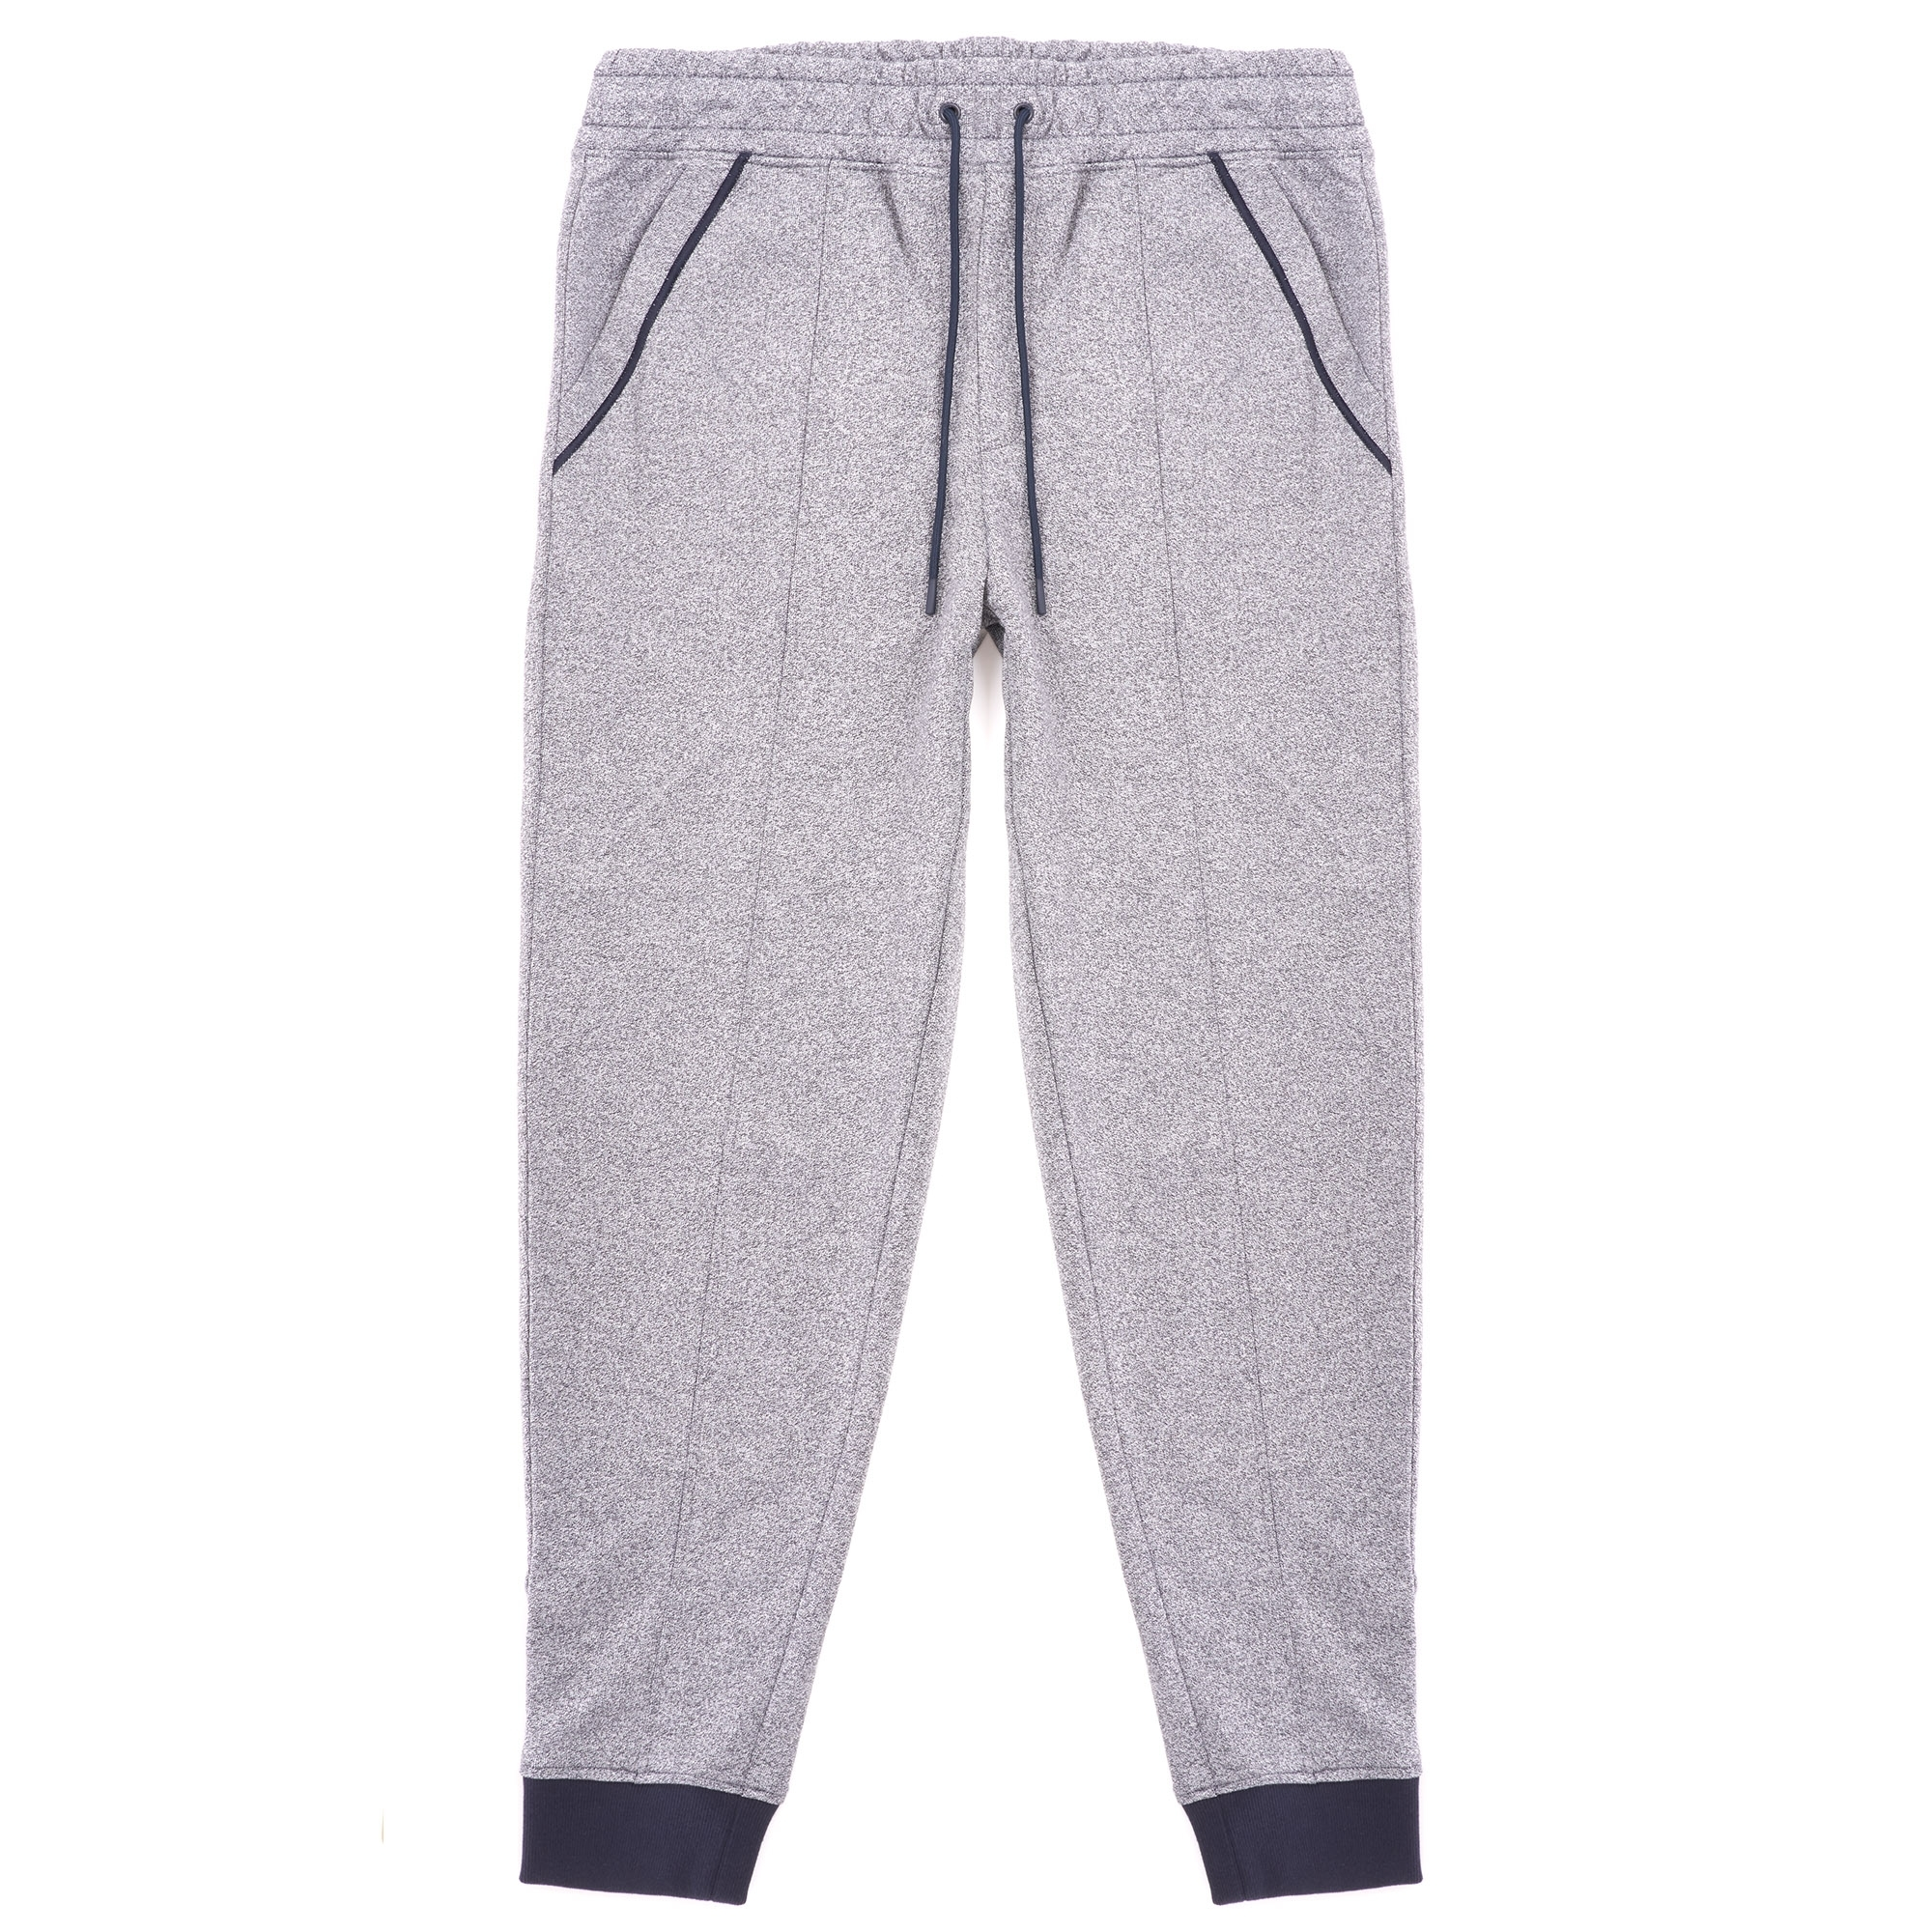 heritage-two-colour-track-pants-medium-grey-p37677-317563_image.jpg (2000×2000)